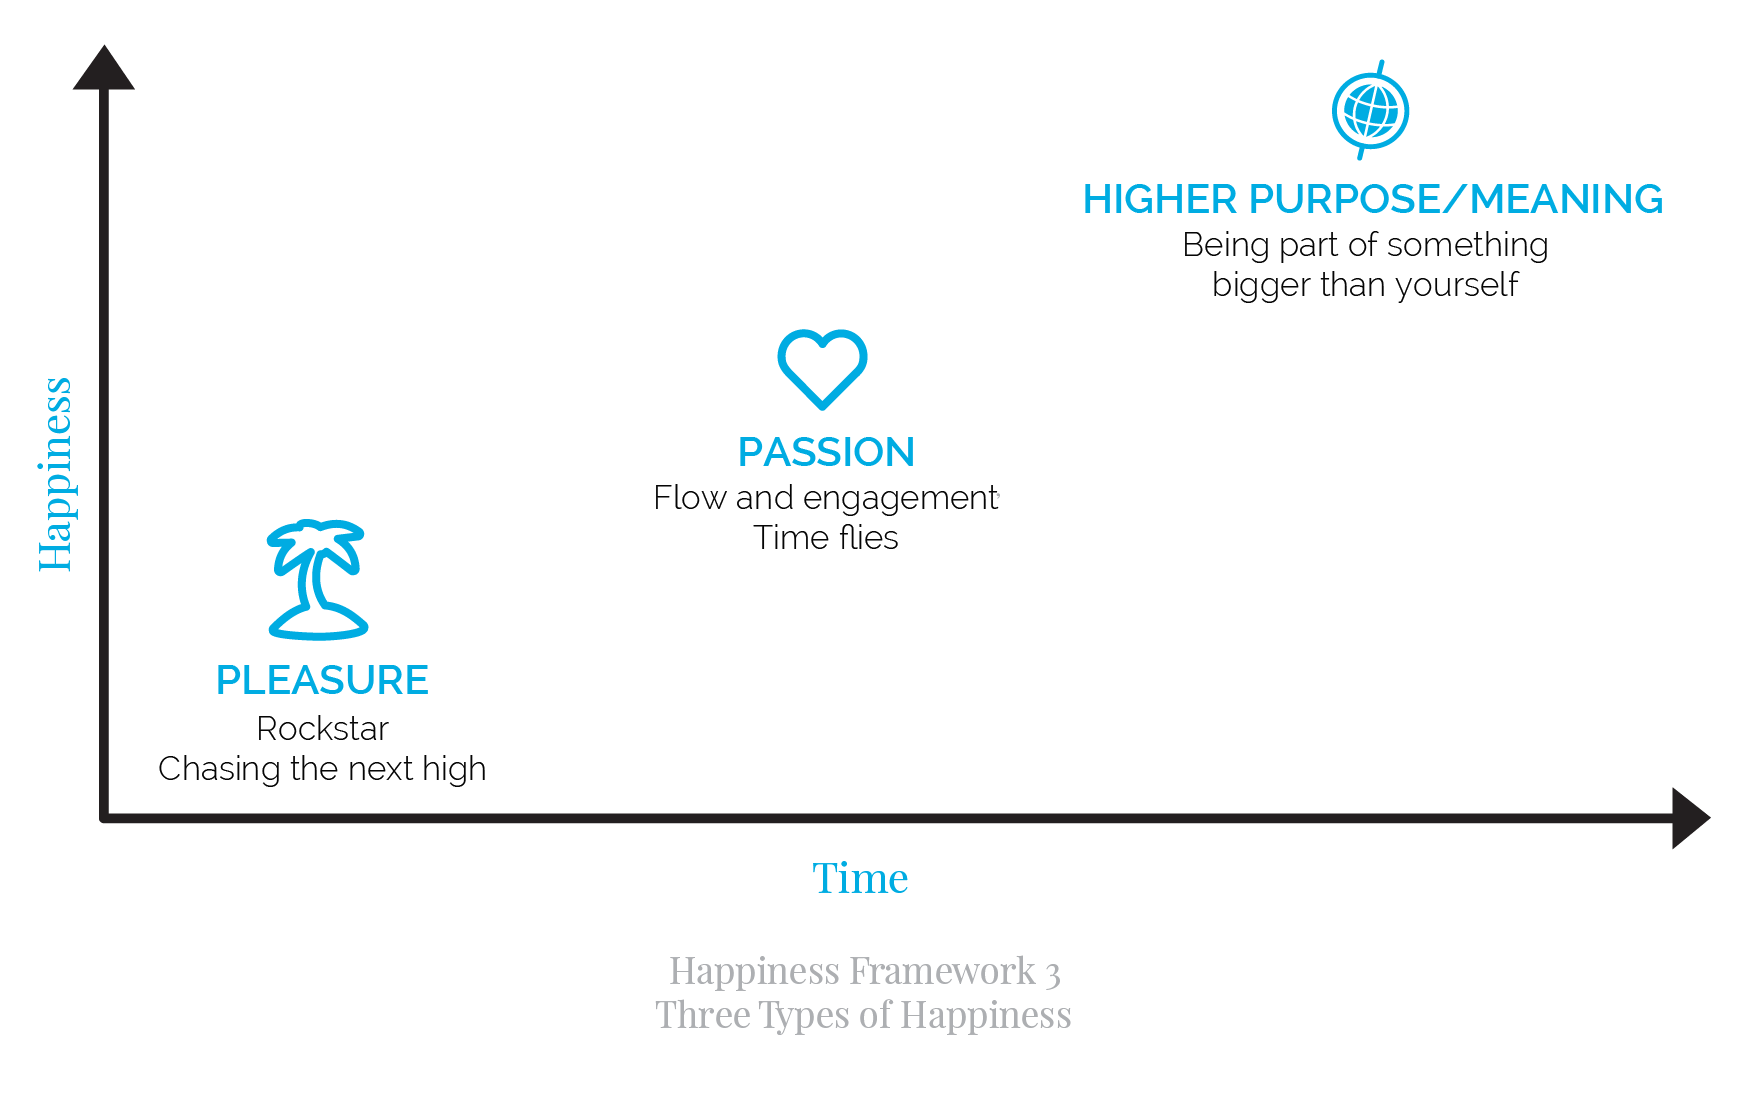 Delivering Happiness Framework Tony Hsieh Jenn Lim